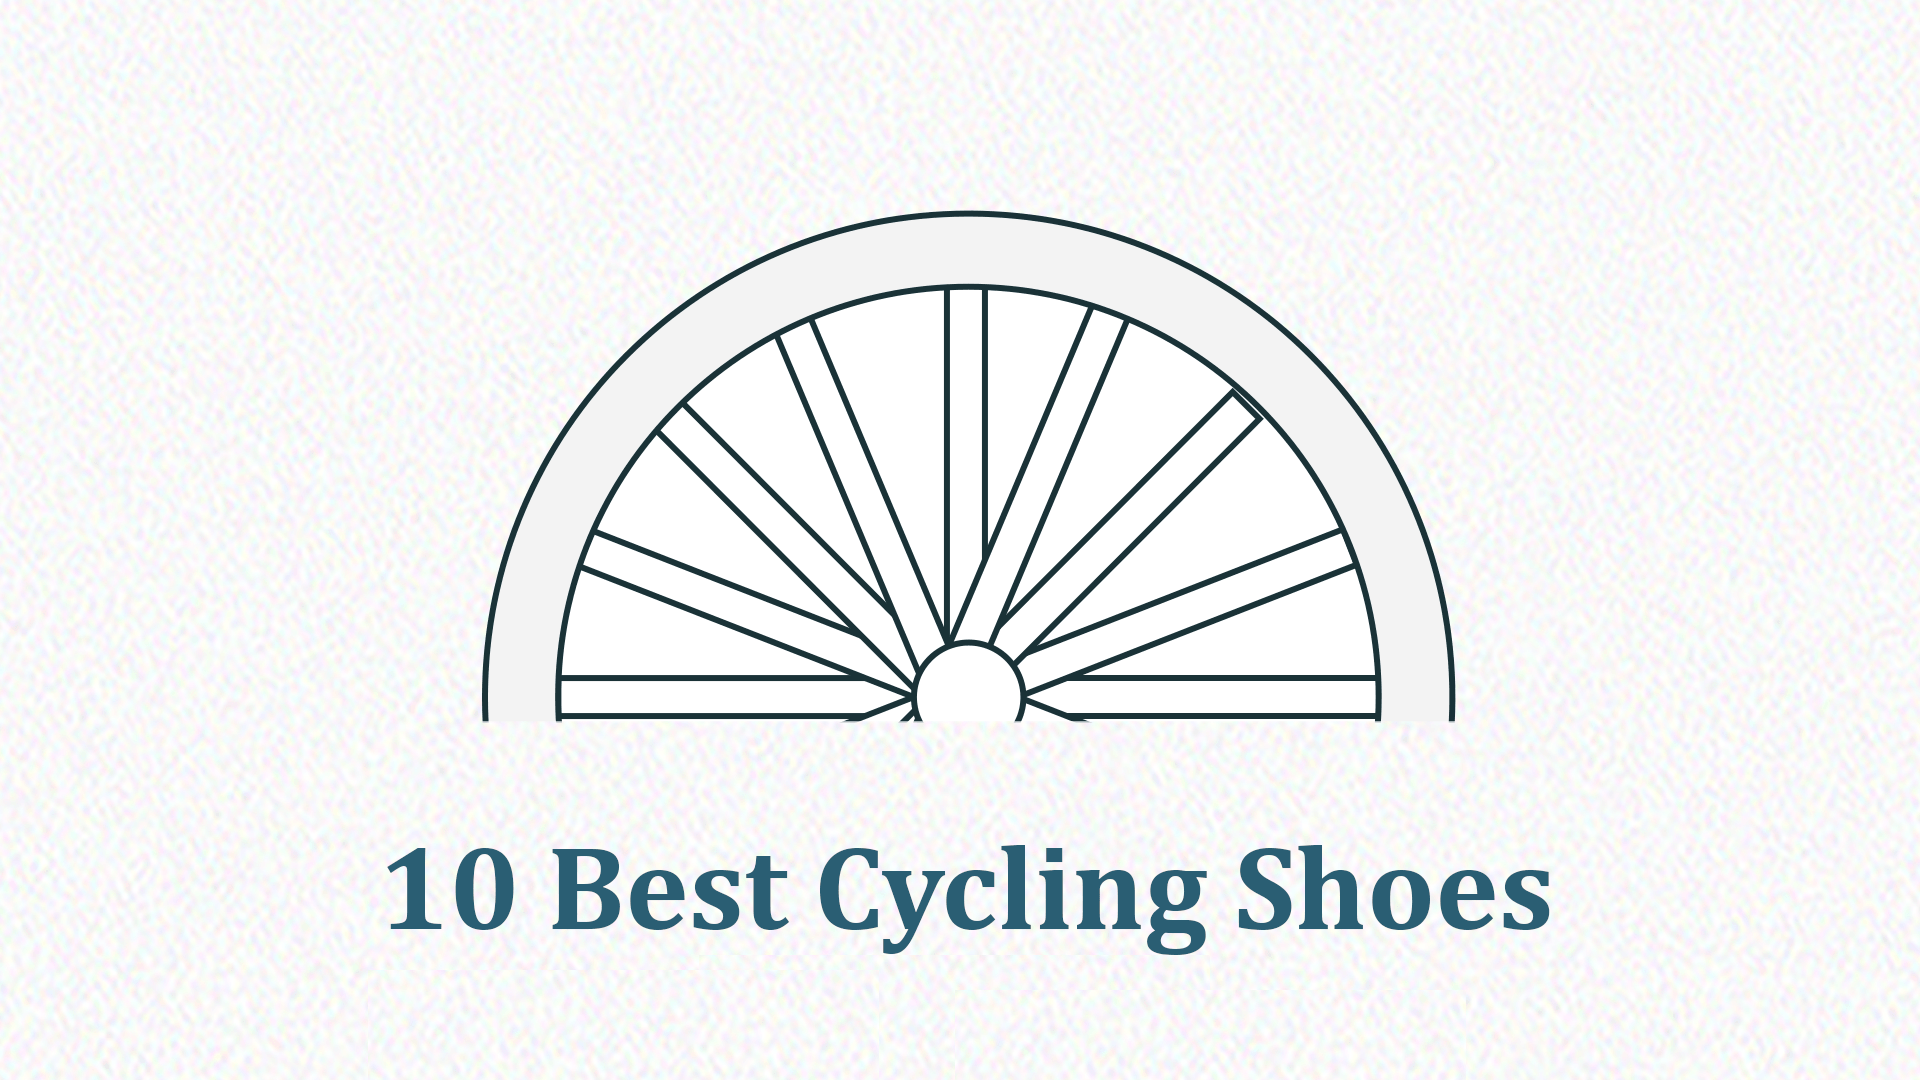 10 Best Cycling Shoes in 2021